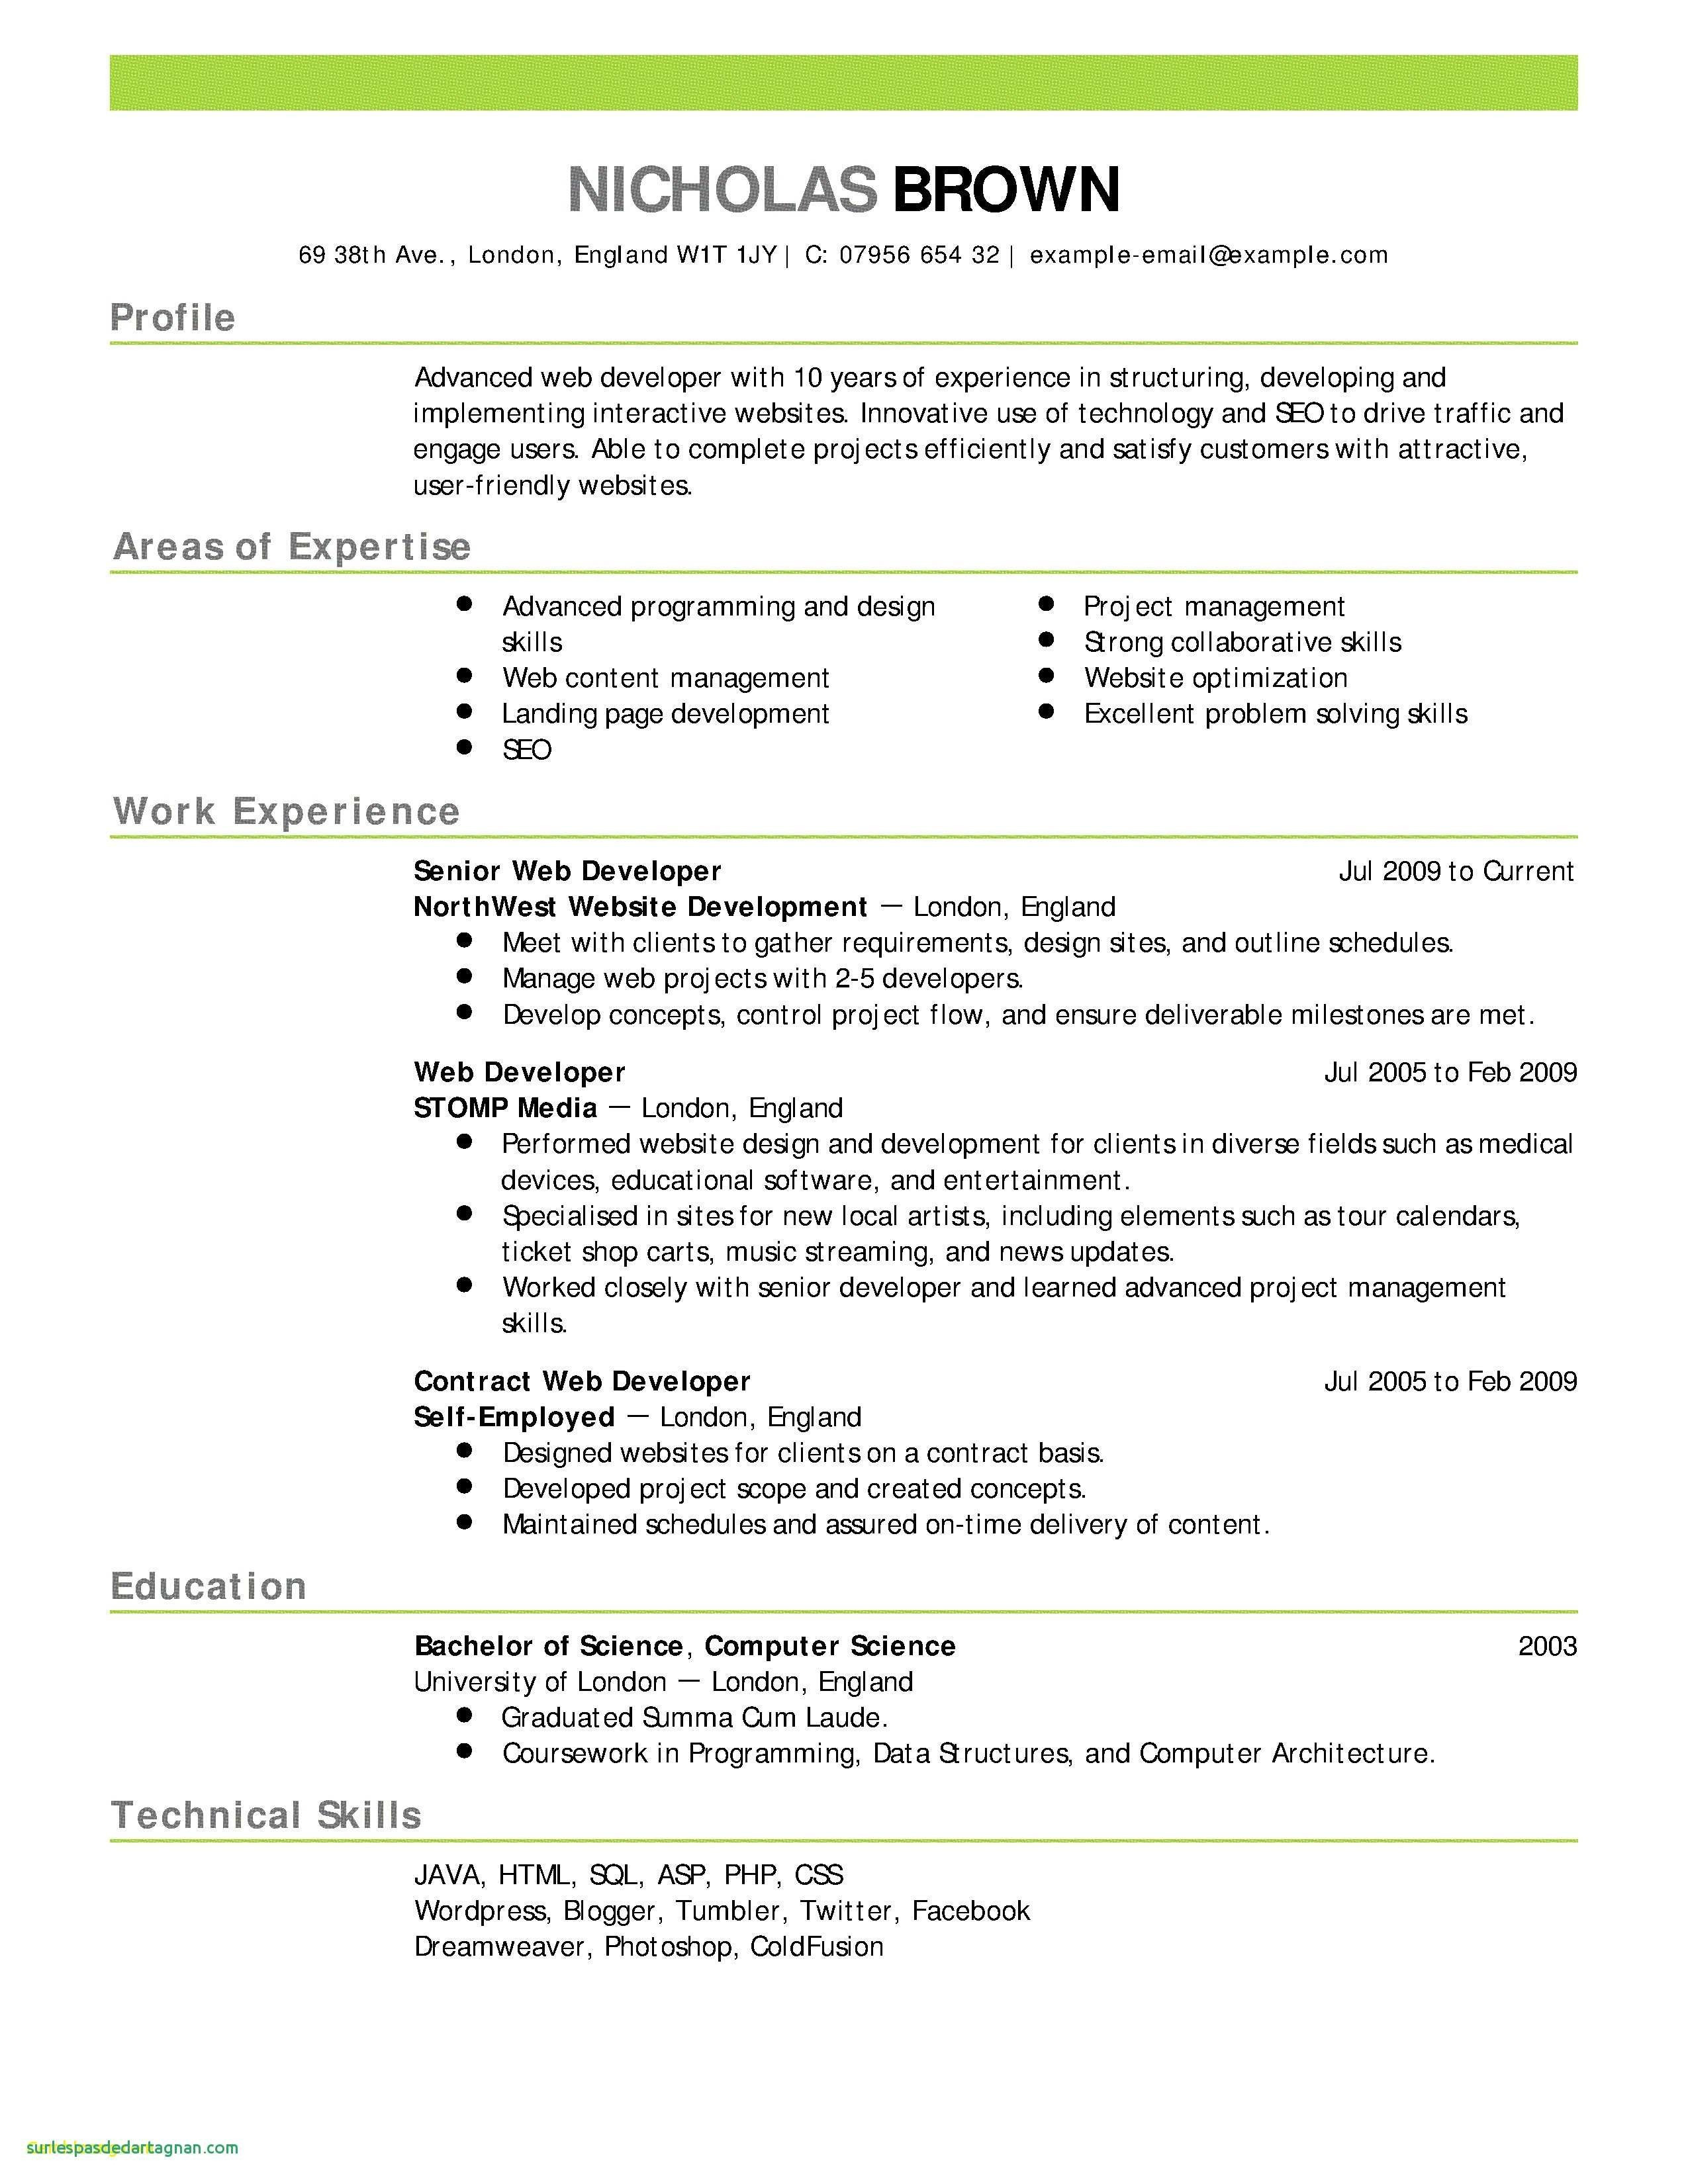 Computer Science Resume Template Reddit - Free Resumes Templates to Download Fresh Resume Template Downloads